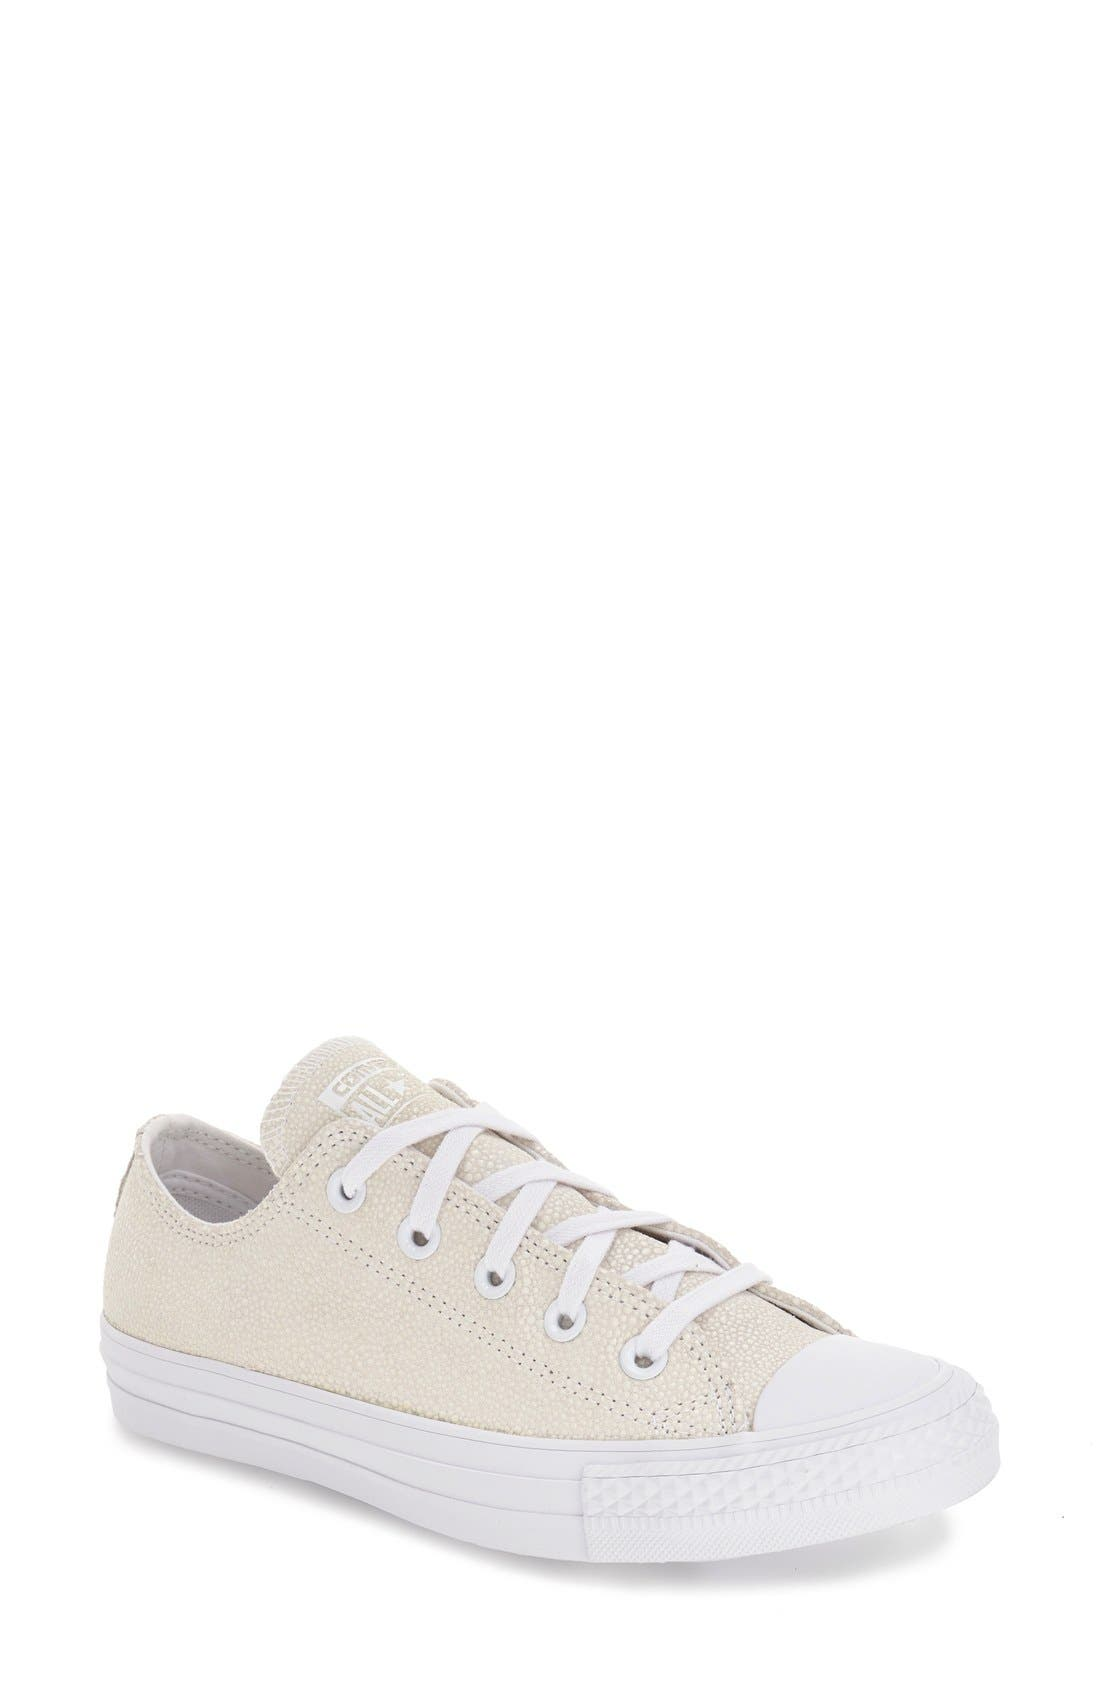 Alternate Image 1 Selected - Converse Chuck Taylor® All Star® 'Stingray - Ox' Low Top Sneaker (Women)